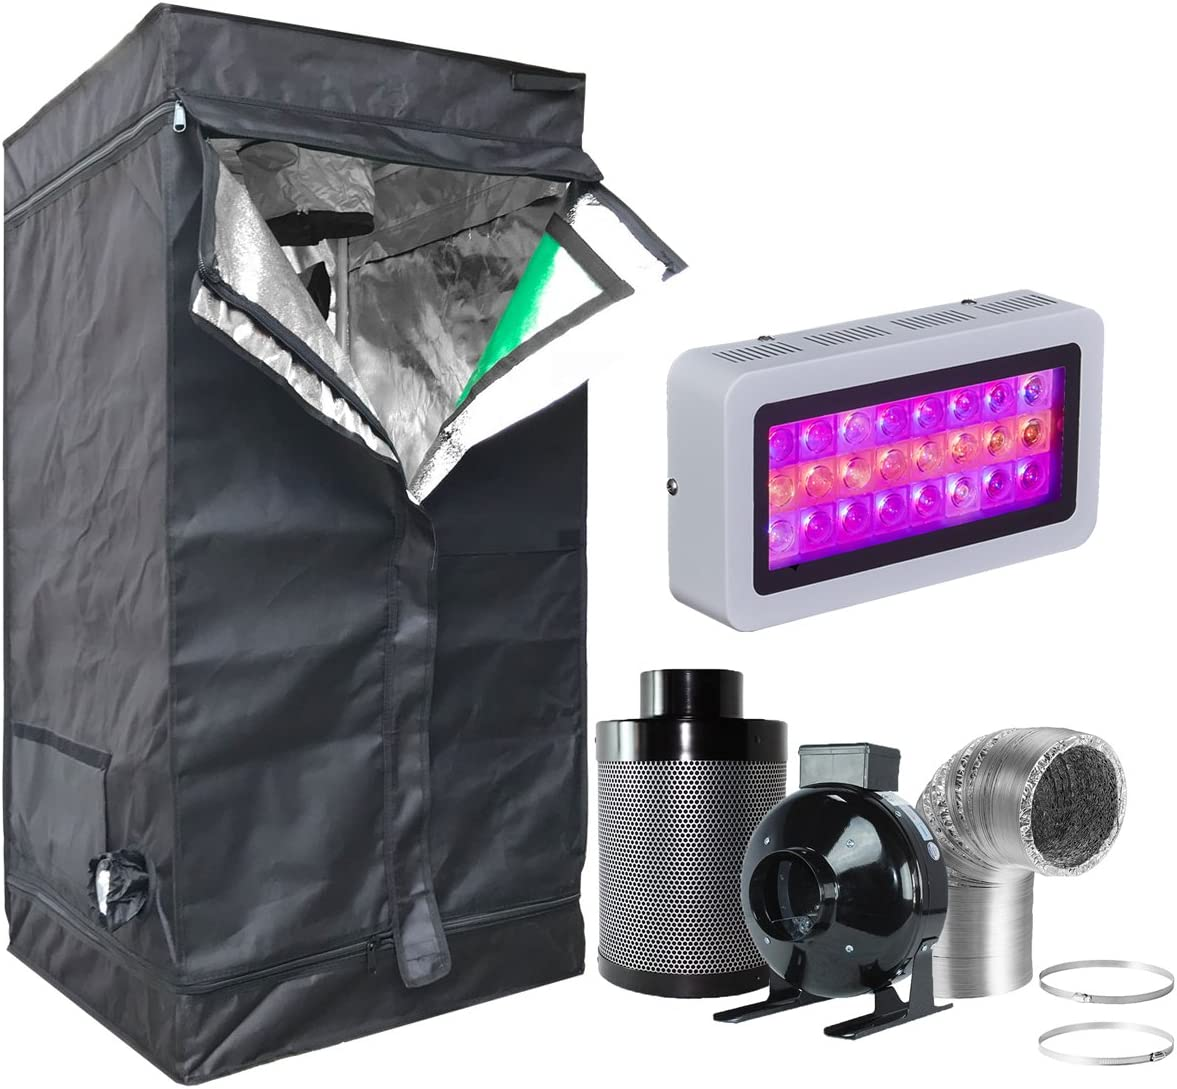 Combo for Hydroponic Indoor Plant Growing System